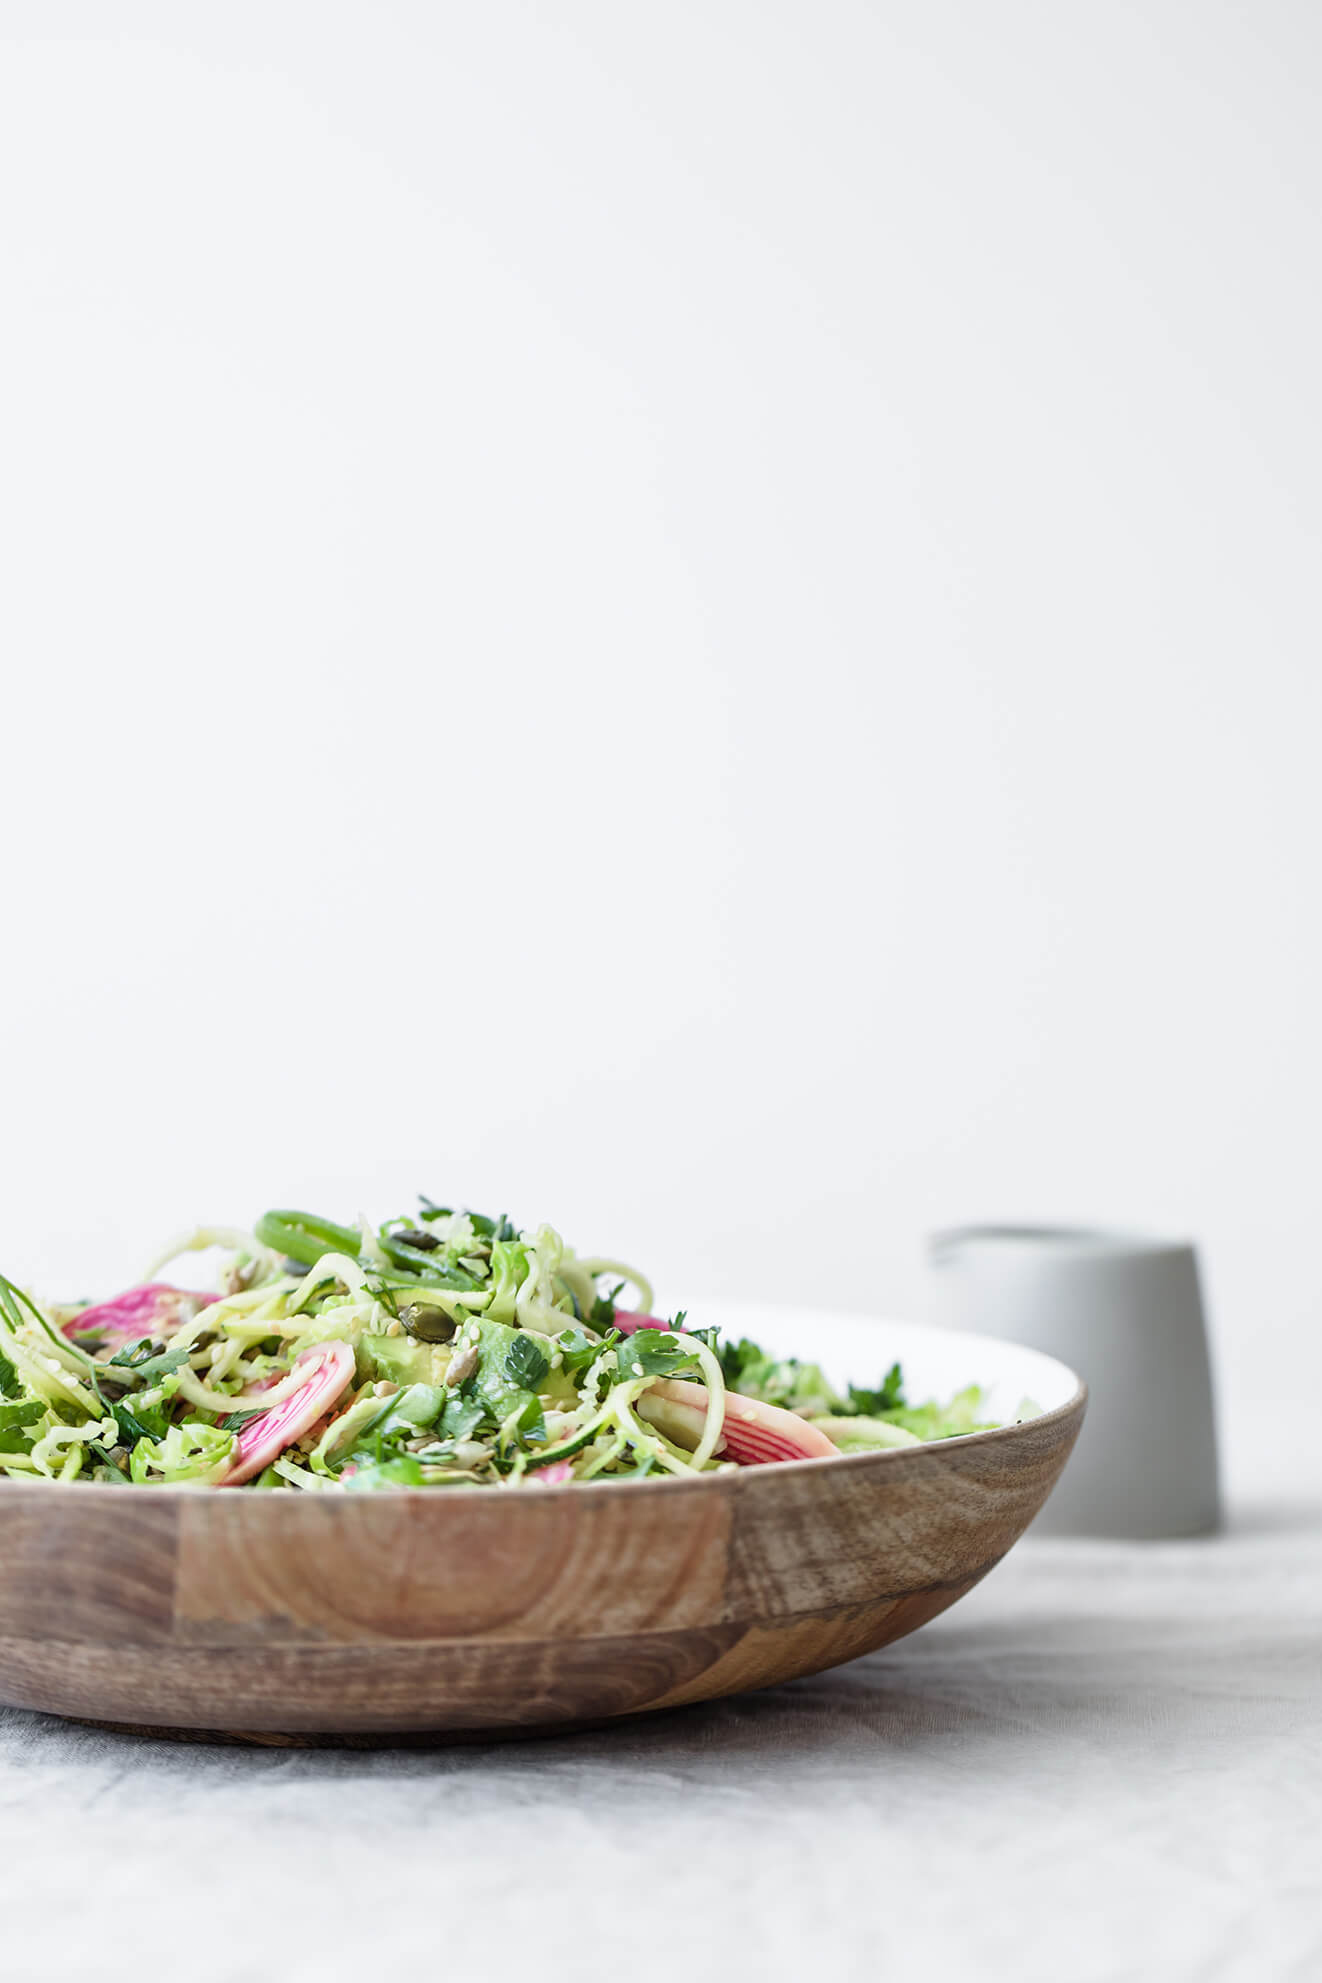 Courgette Noodle and Shredded Sprout Salad, food photography